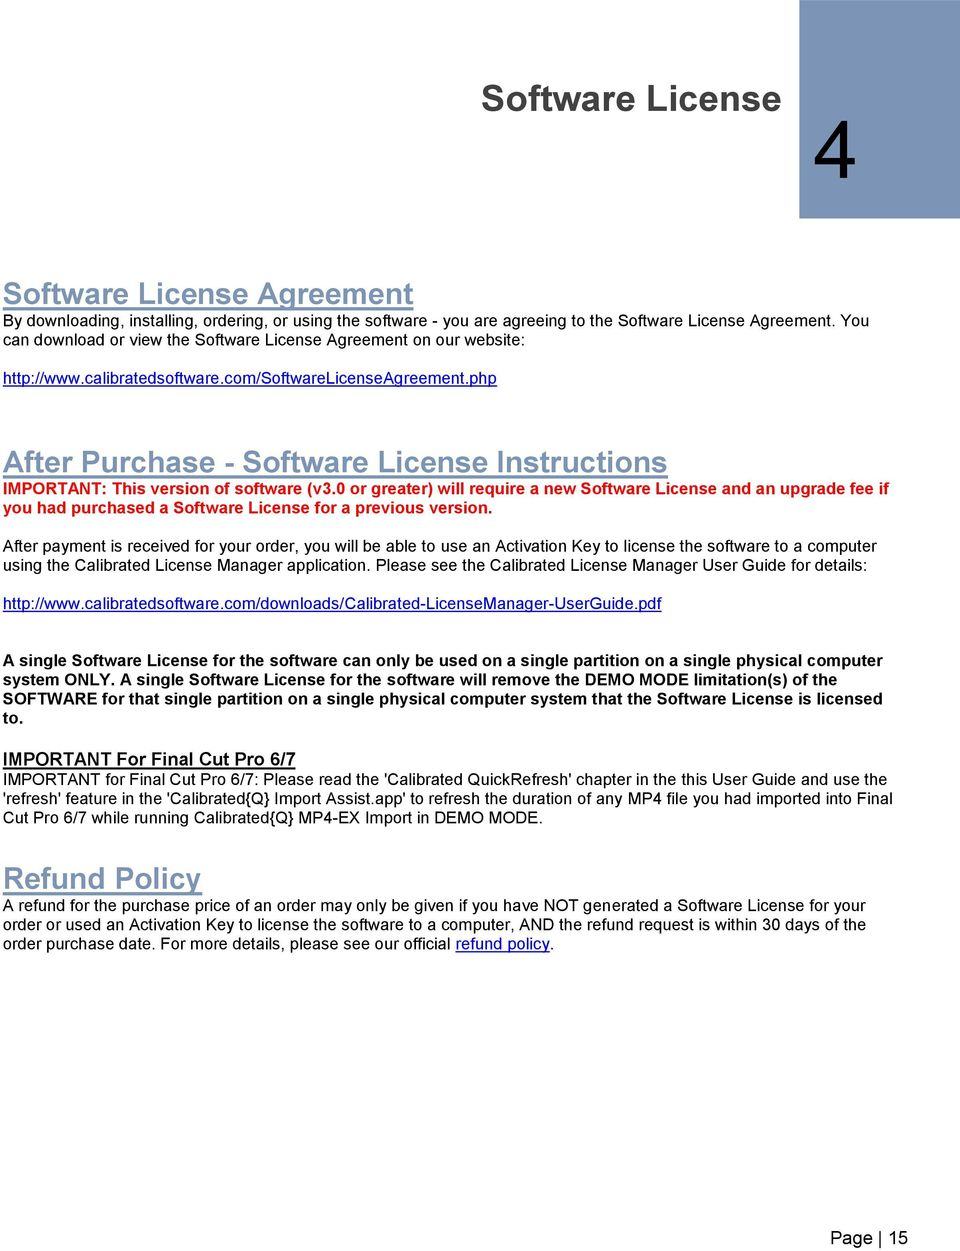 User Guide  Calibrated Software, Inc  - PDF